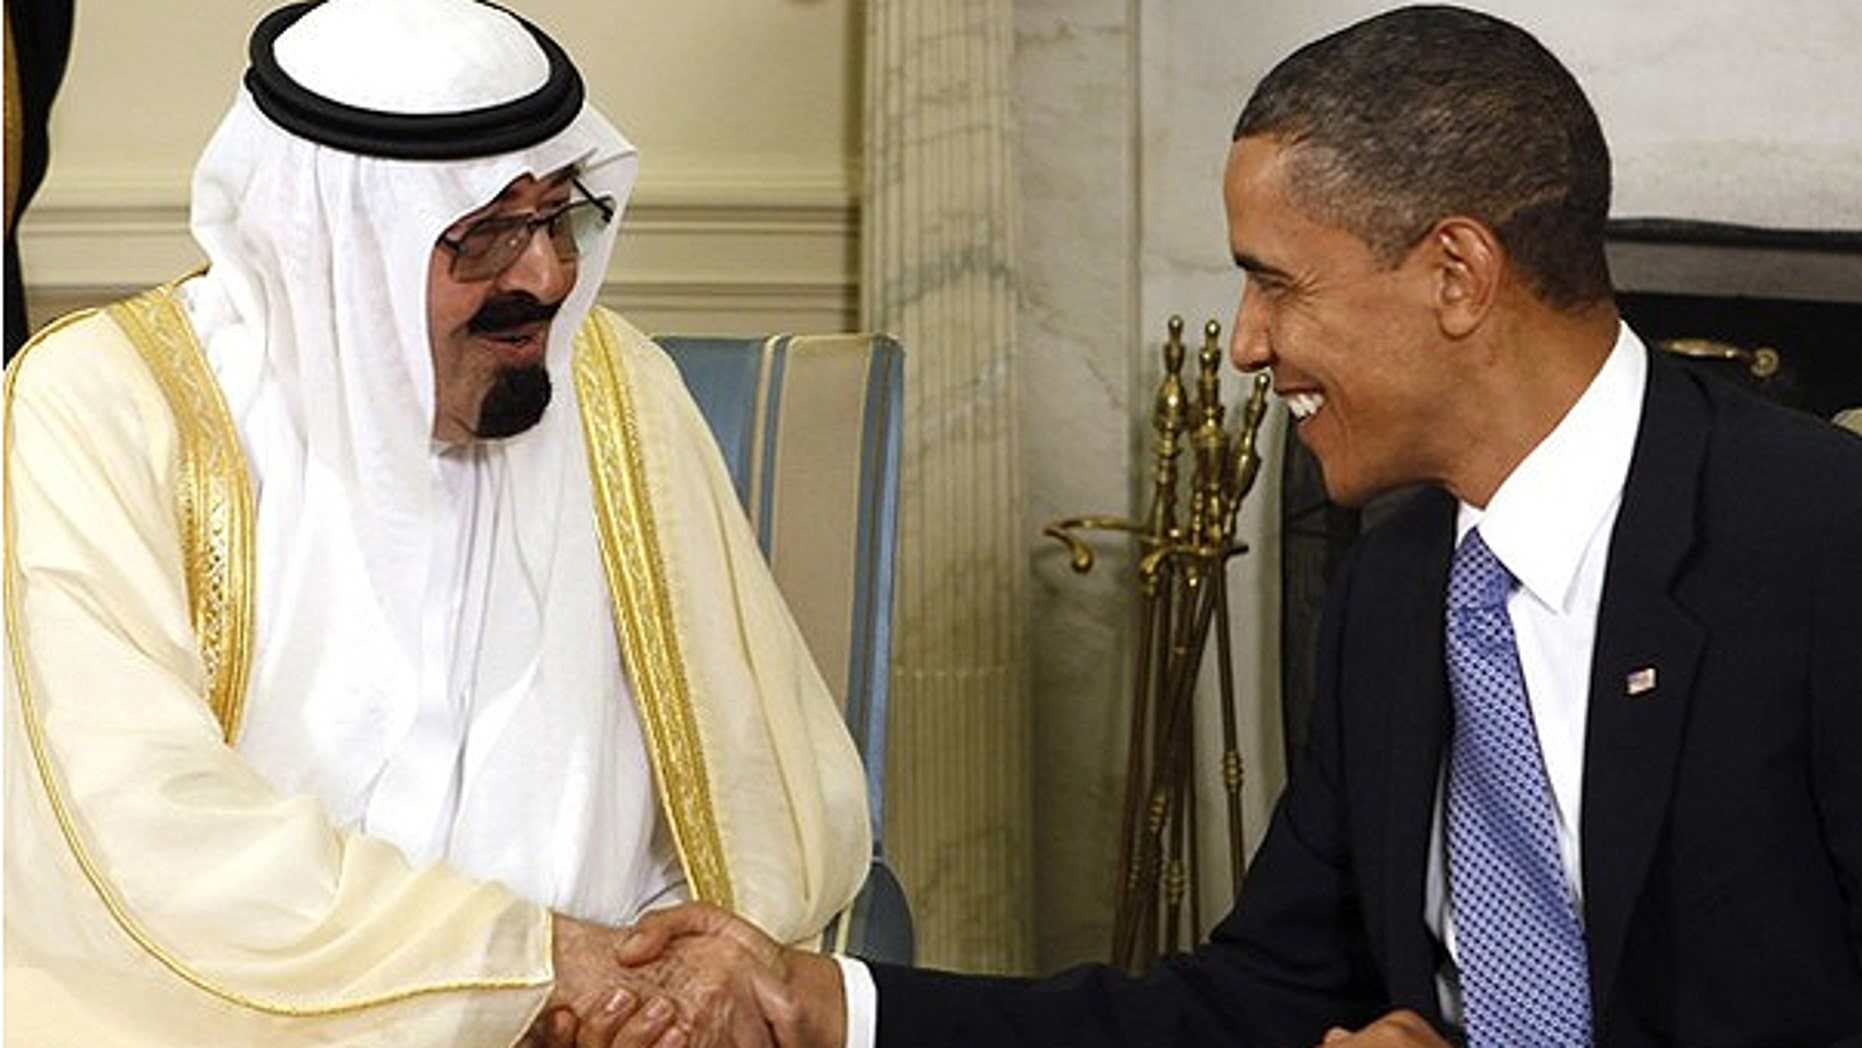 June 29, 2010: President Obama meets with King Abdullah of Saudi Arabia in the Oval Office.